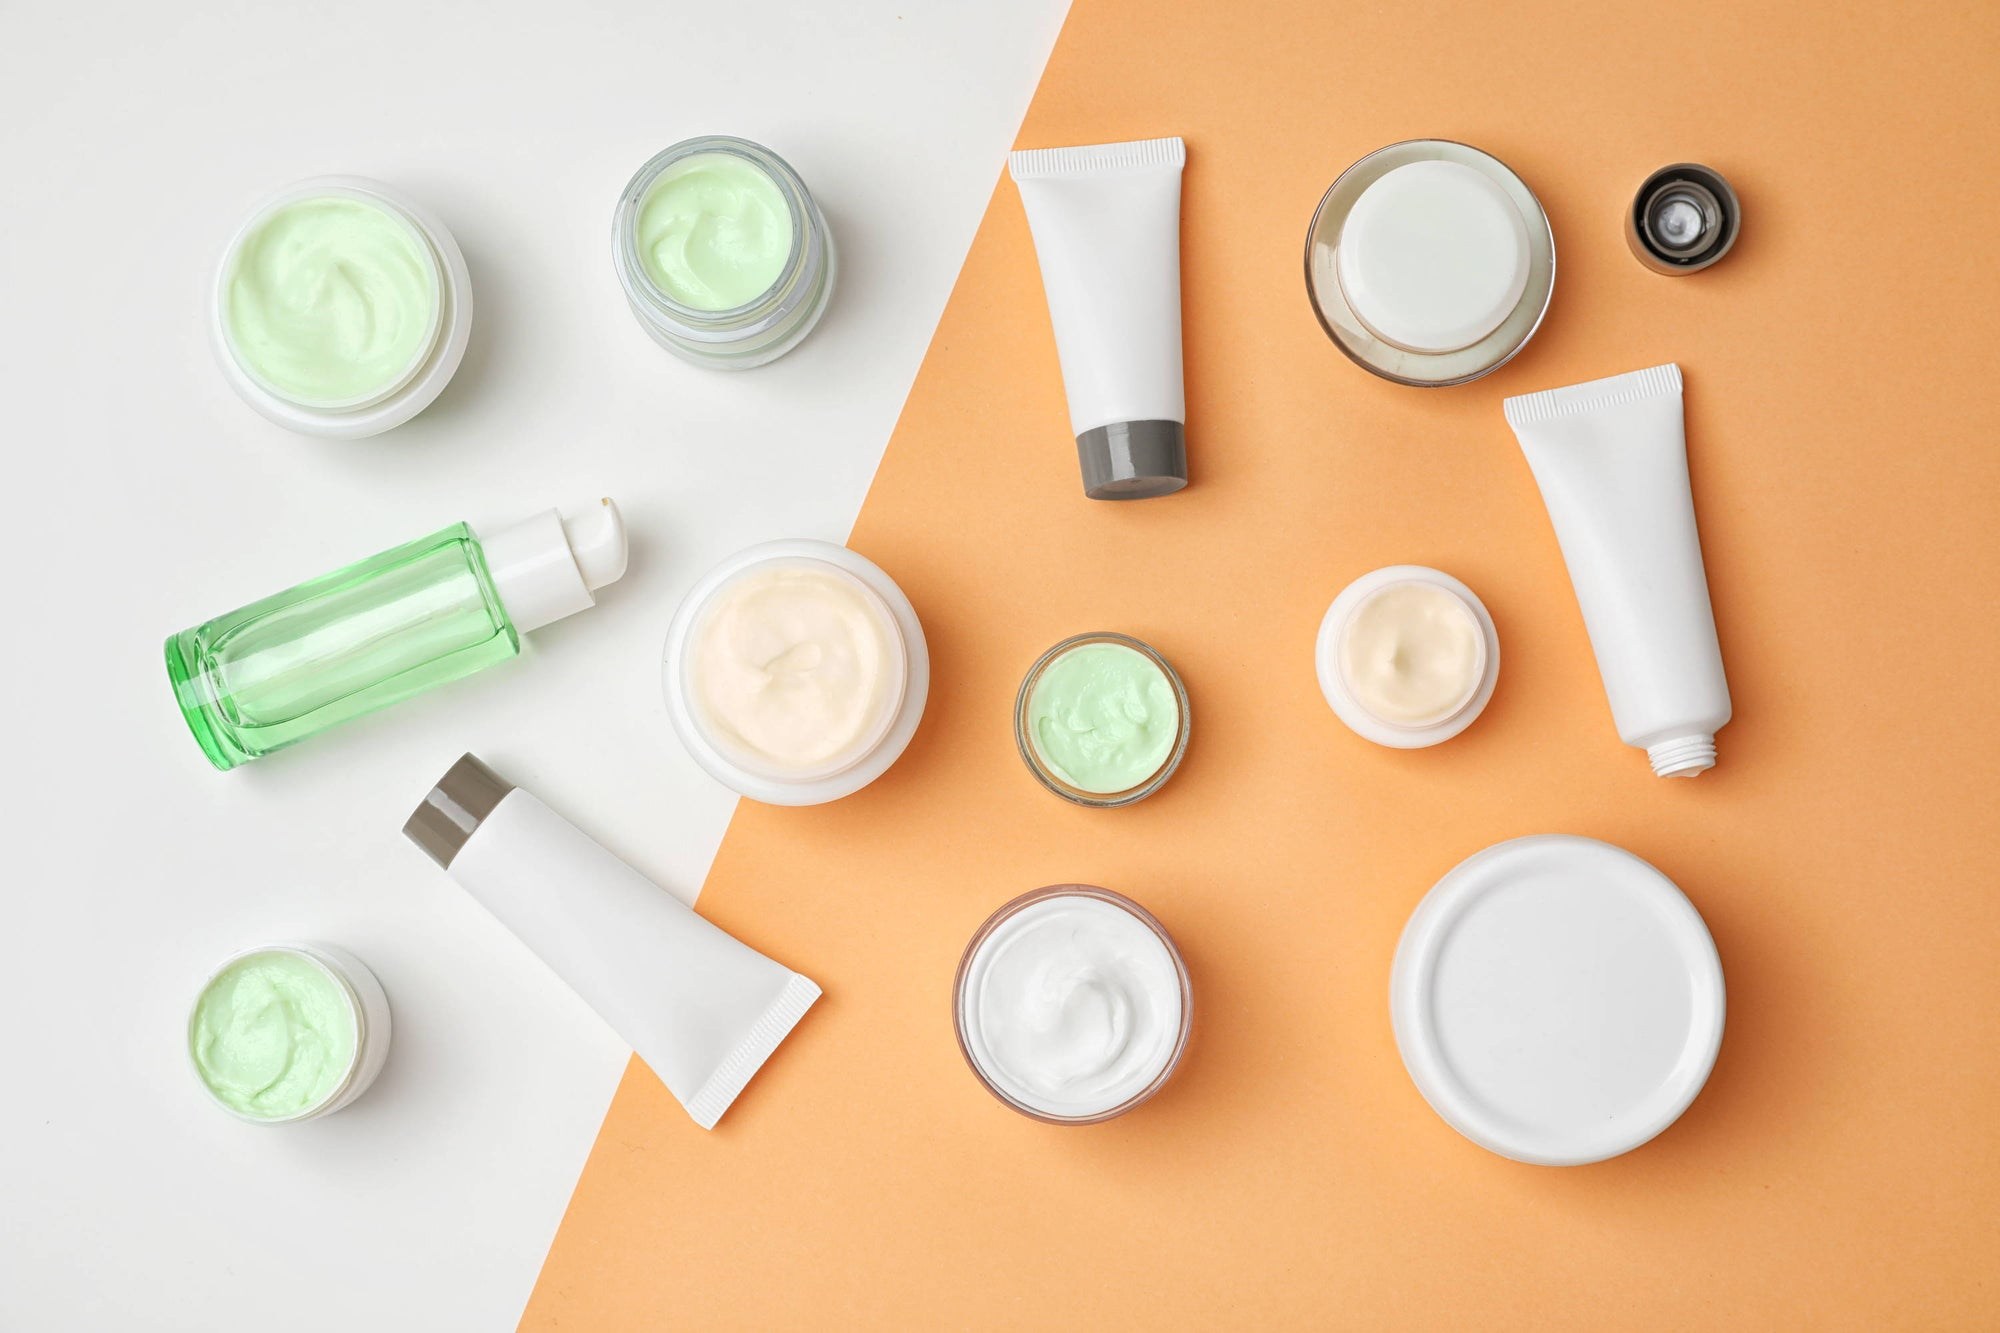 How to Layer Skin Care Products, According to a Dermatologist